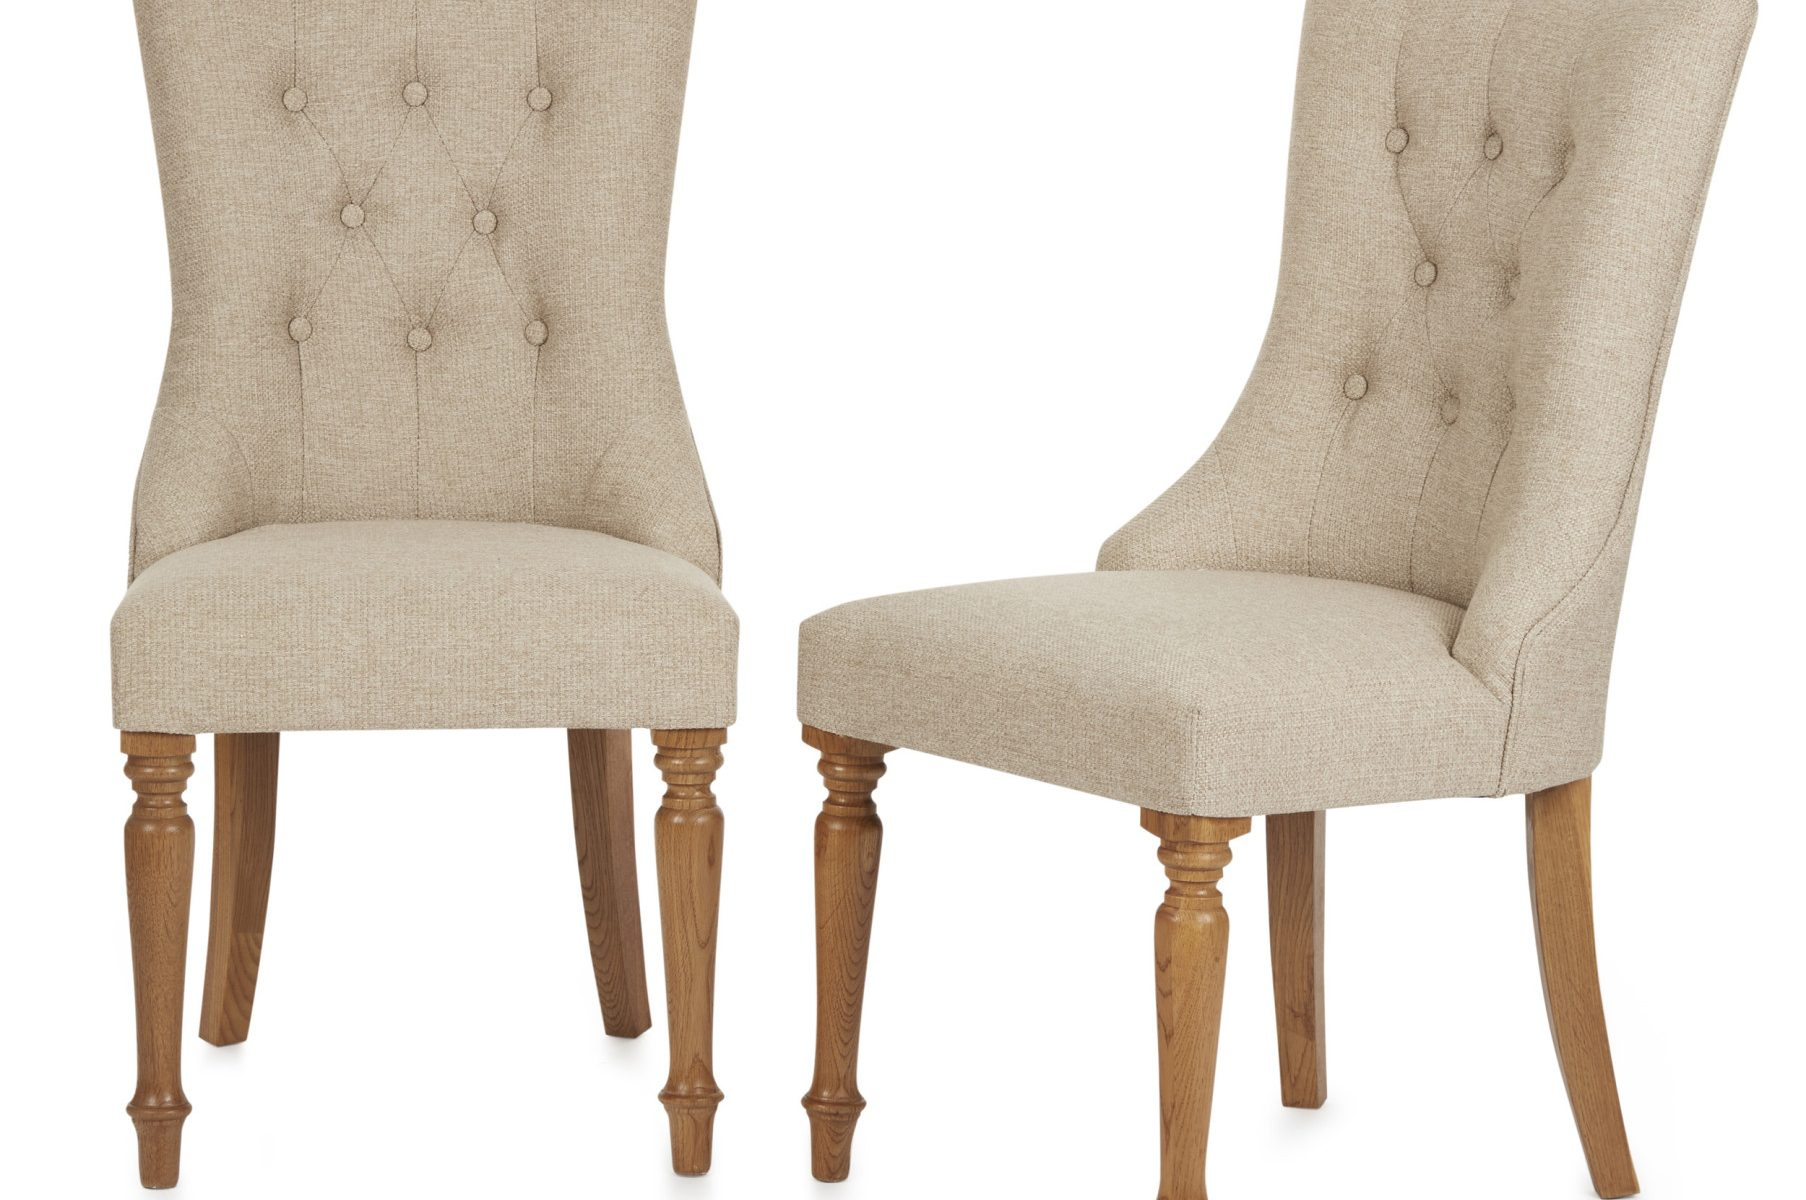 dining chairs made to order furniture aylesbury vintage oak pair of diningdining chairs